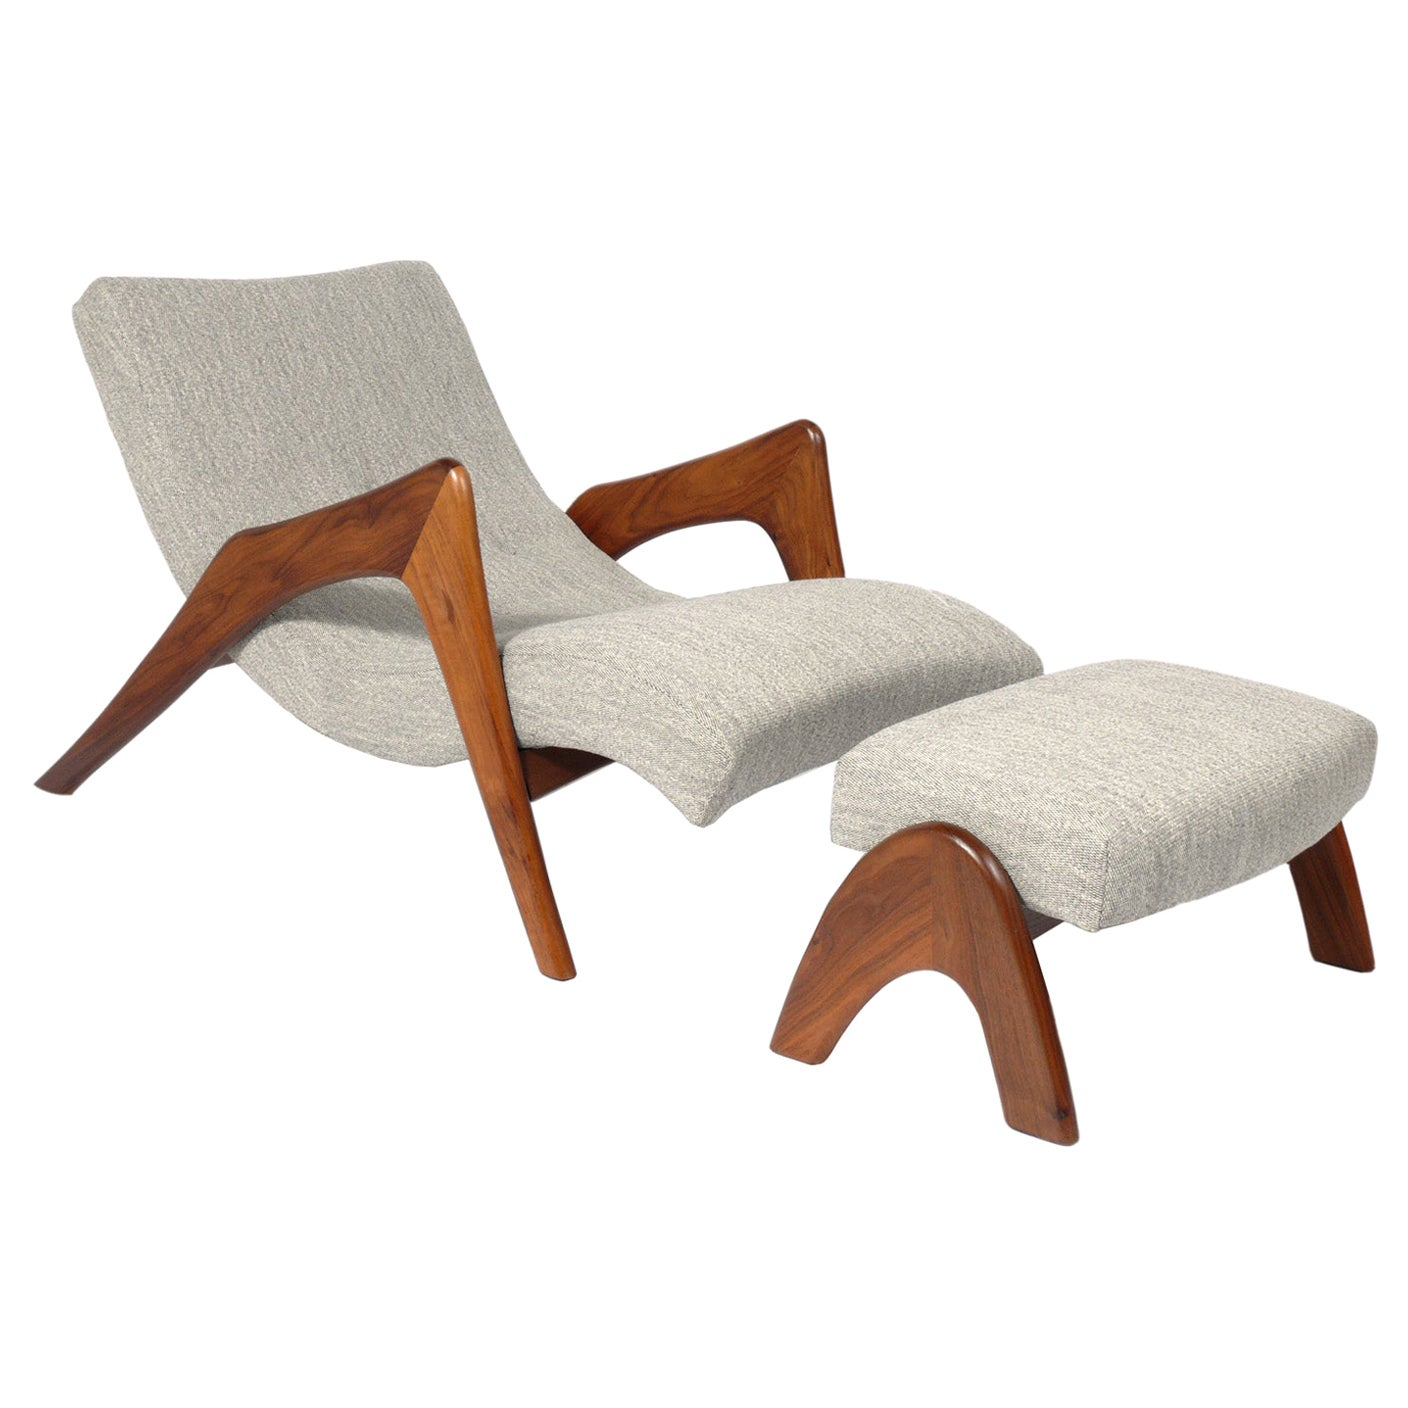 Adrian Pearsall Chaise Lounge Chair and Ottoman